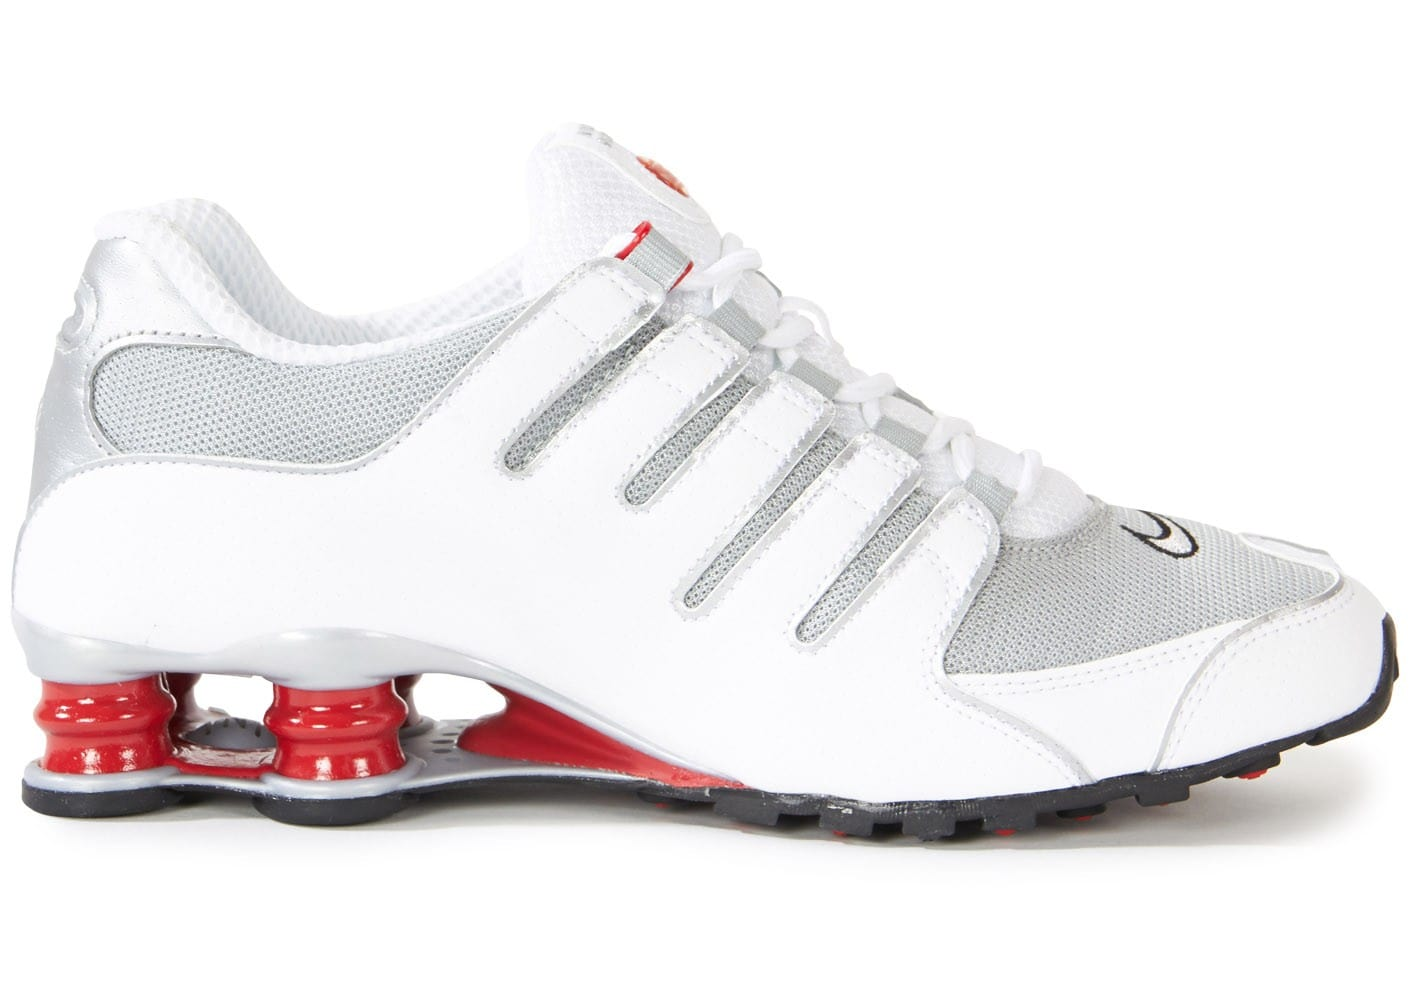 info for f9835 643f3 ... Chaussures Nike Shox Nz Blanche Rouge vue dessous ...